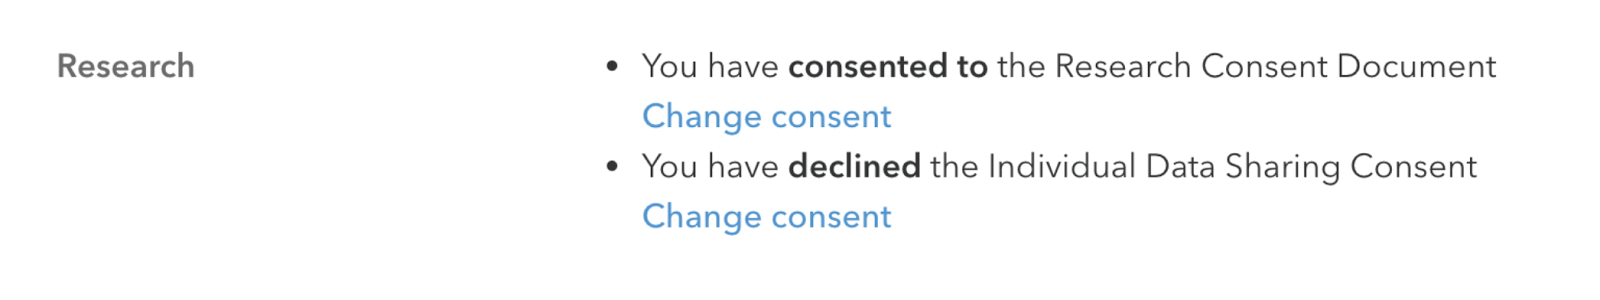 Research_consent.png